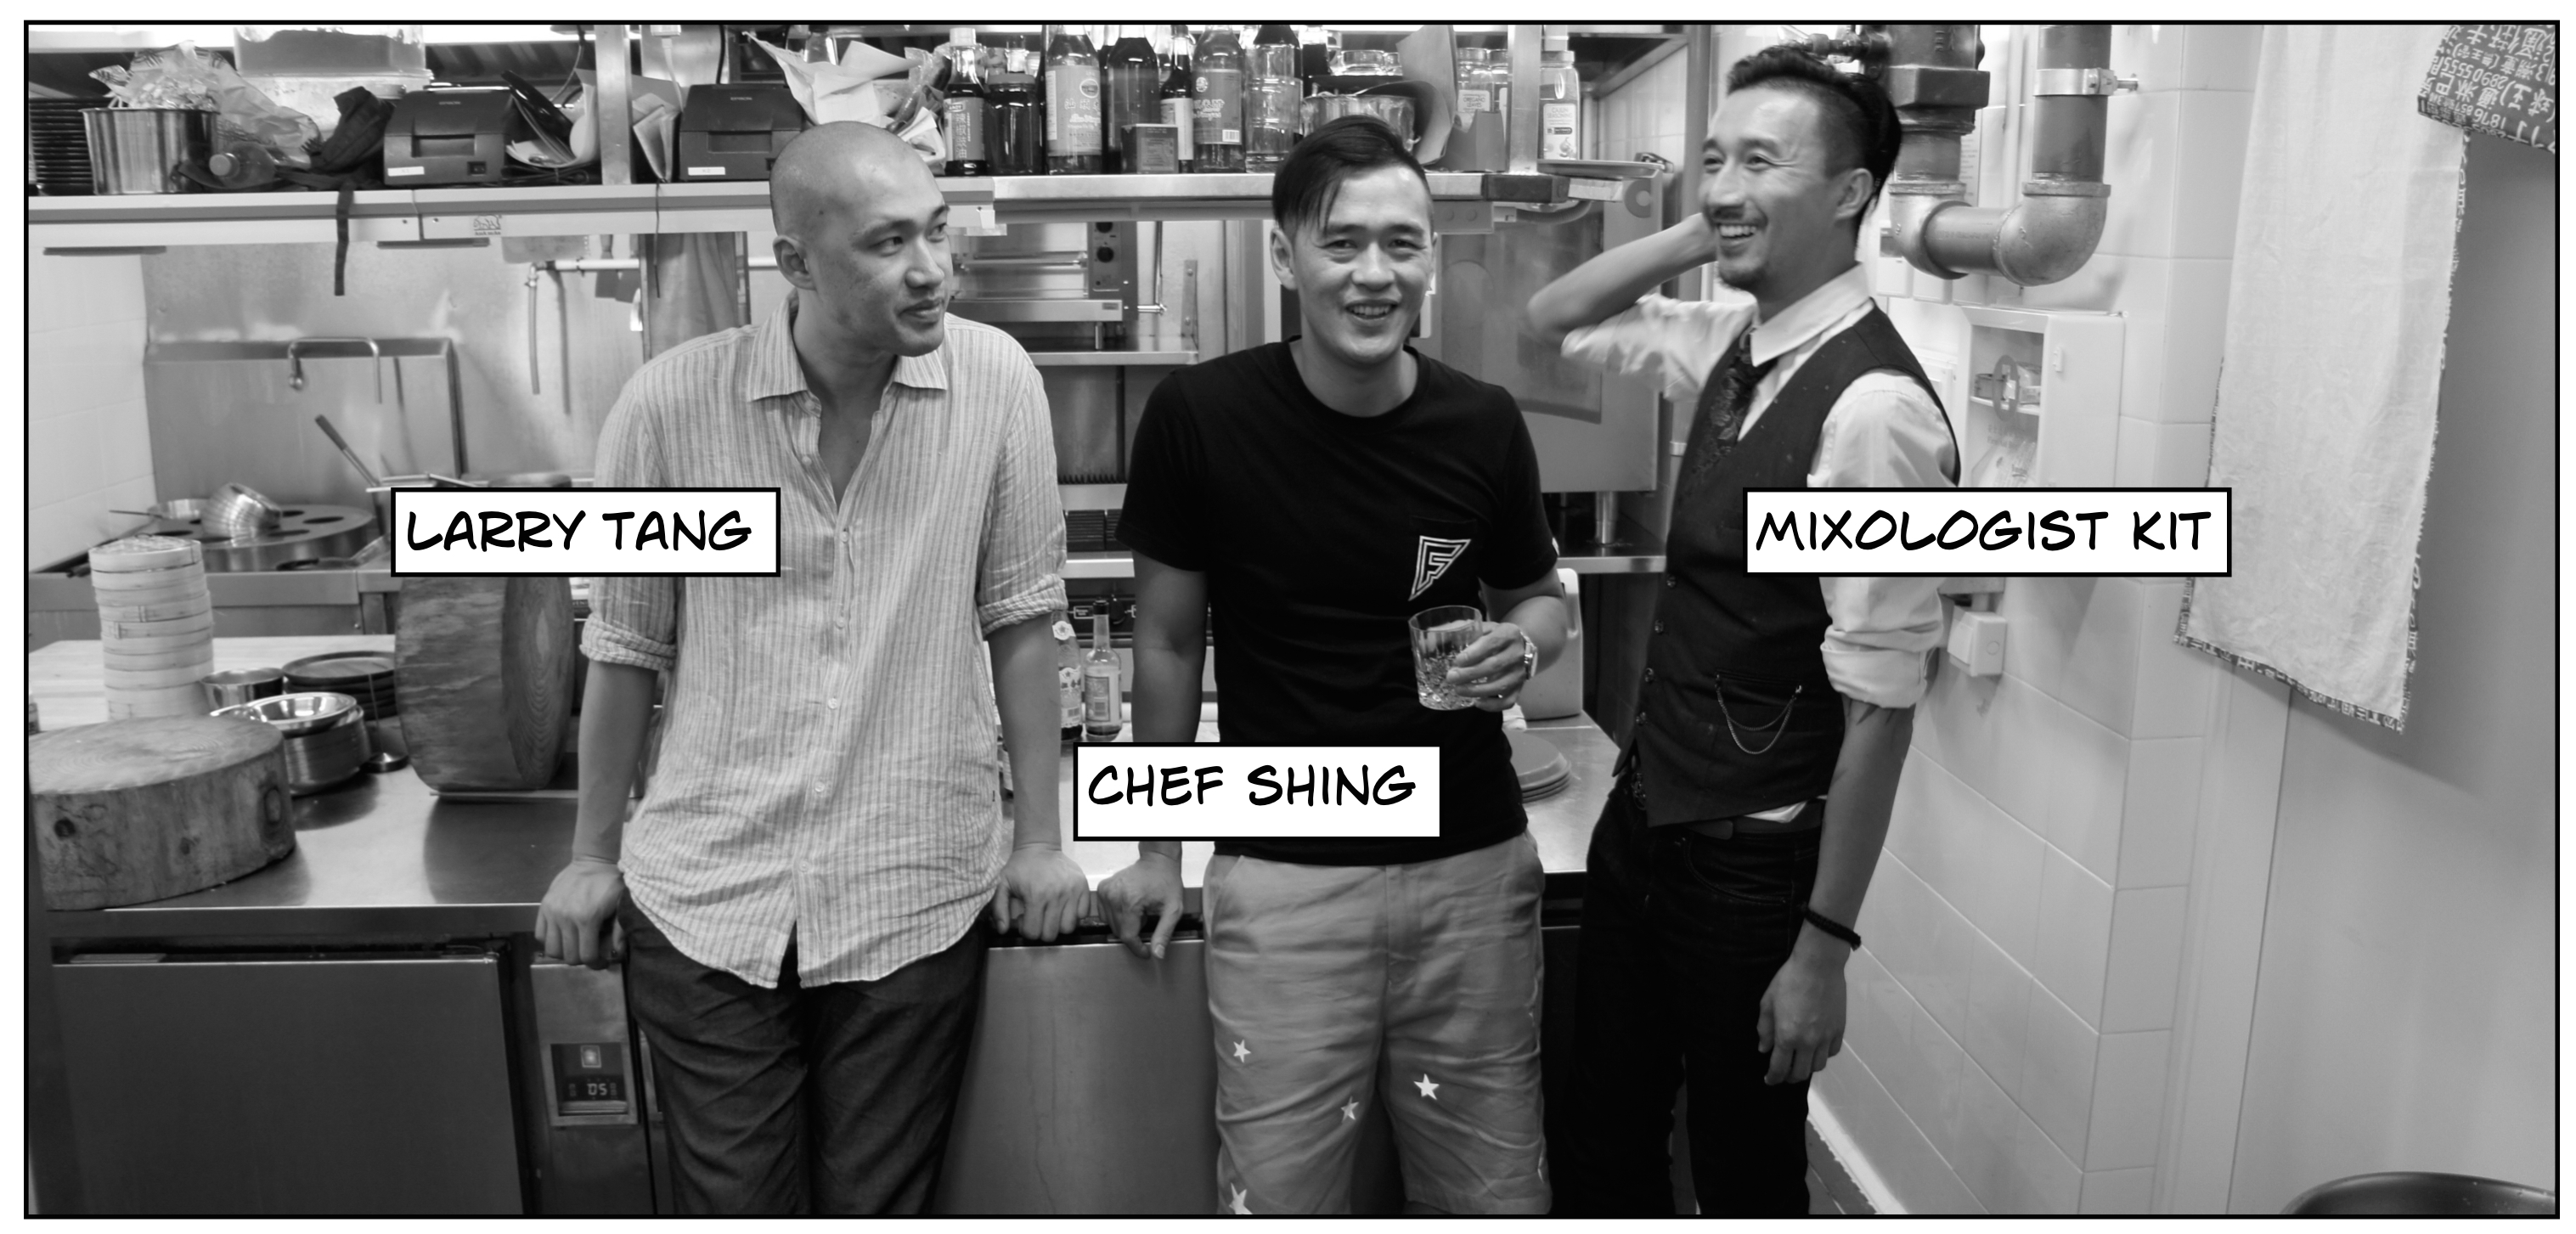 black and white photo of three men standing against a kitchen counter